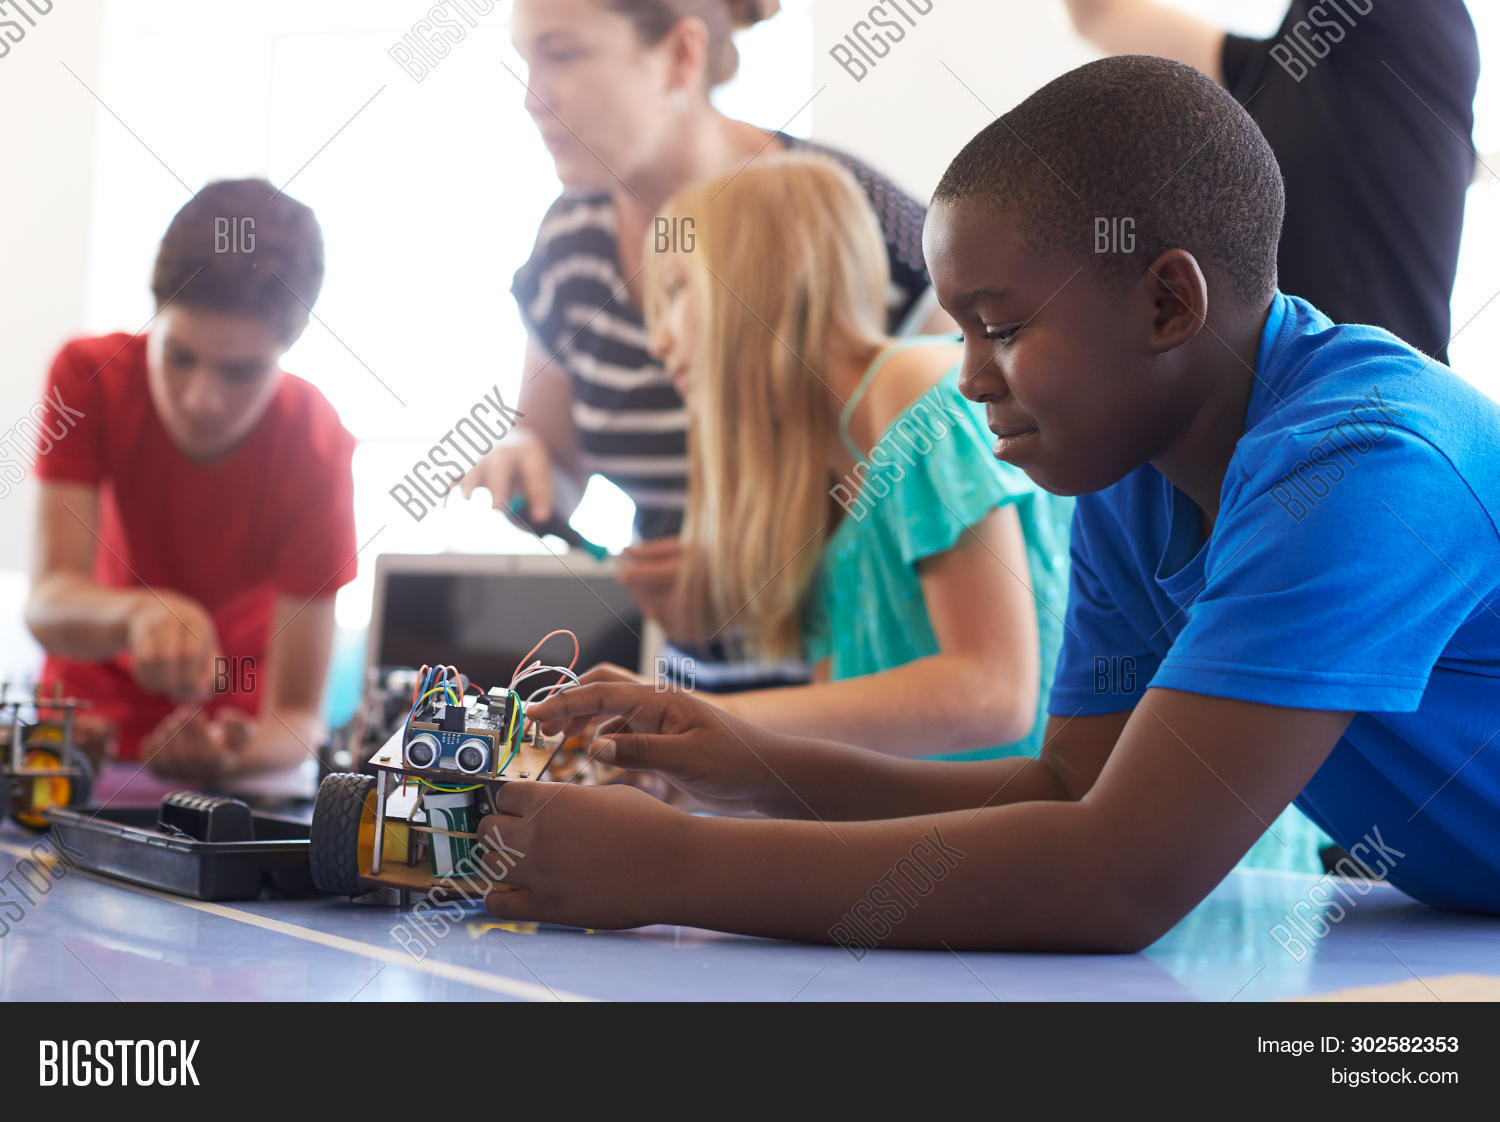 10 years old,11 years old,african american,after school,black,boy,building,car,caucasian,child,children,class,club,code,coding,computer,computing,education,female,five people,girl,grade school,group,helping,horizontal,laptop,learning,lesson,listening,making,male,middle school,multi-cultural,people,person,programming,pupils,robot,robotics,school,stem,students,teacher,teaching,technology,tutor,vehicle,woman,women